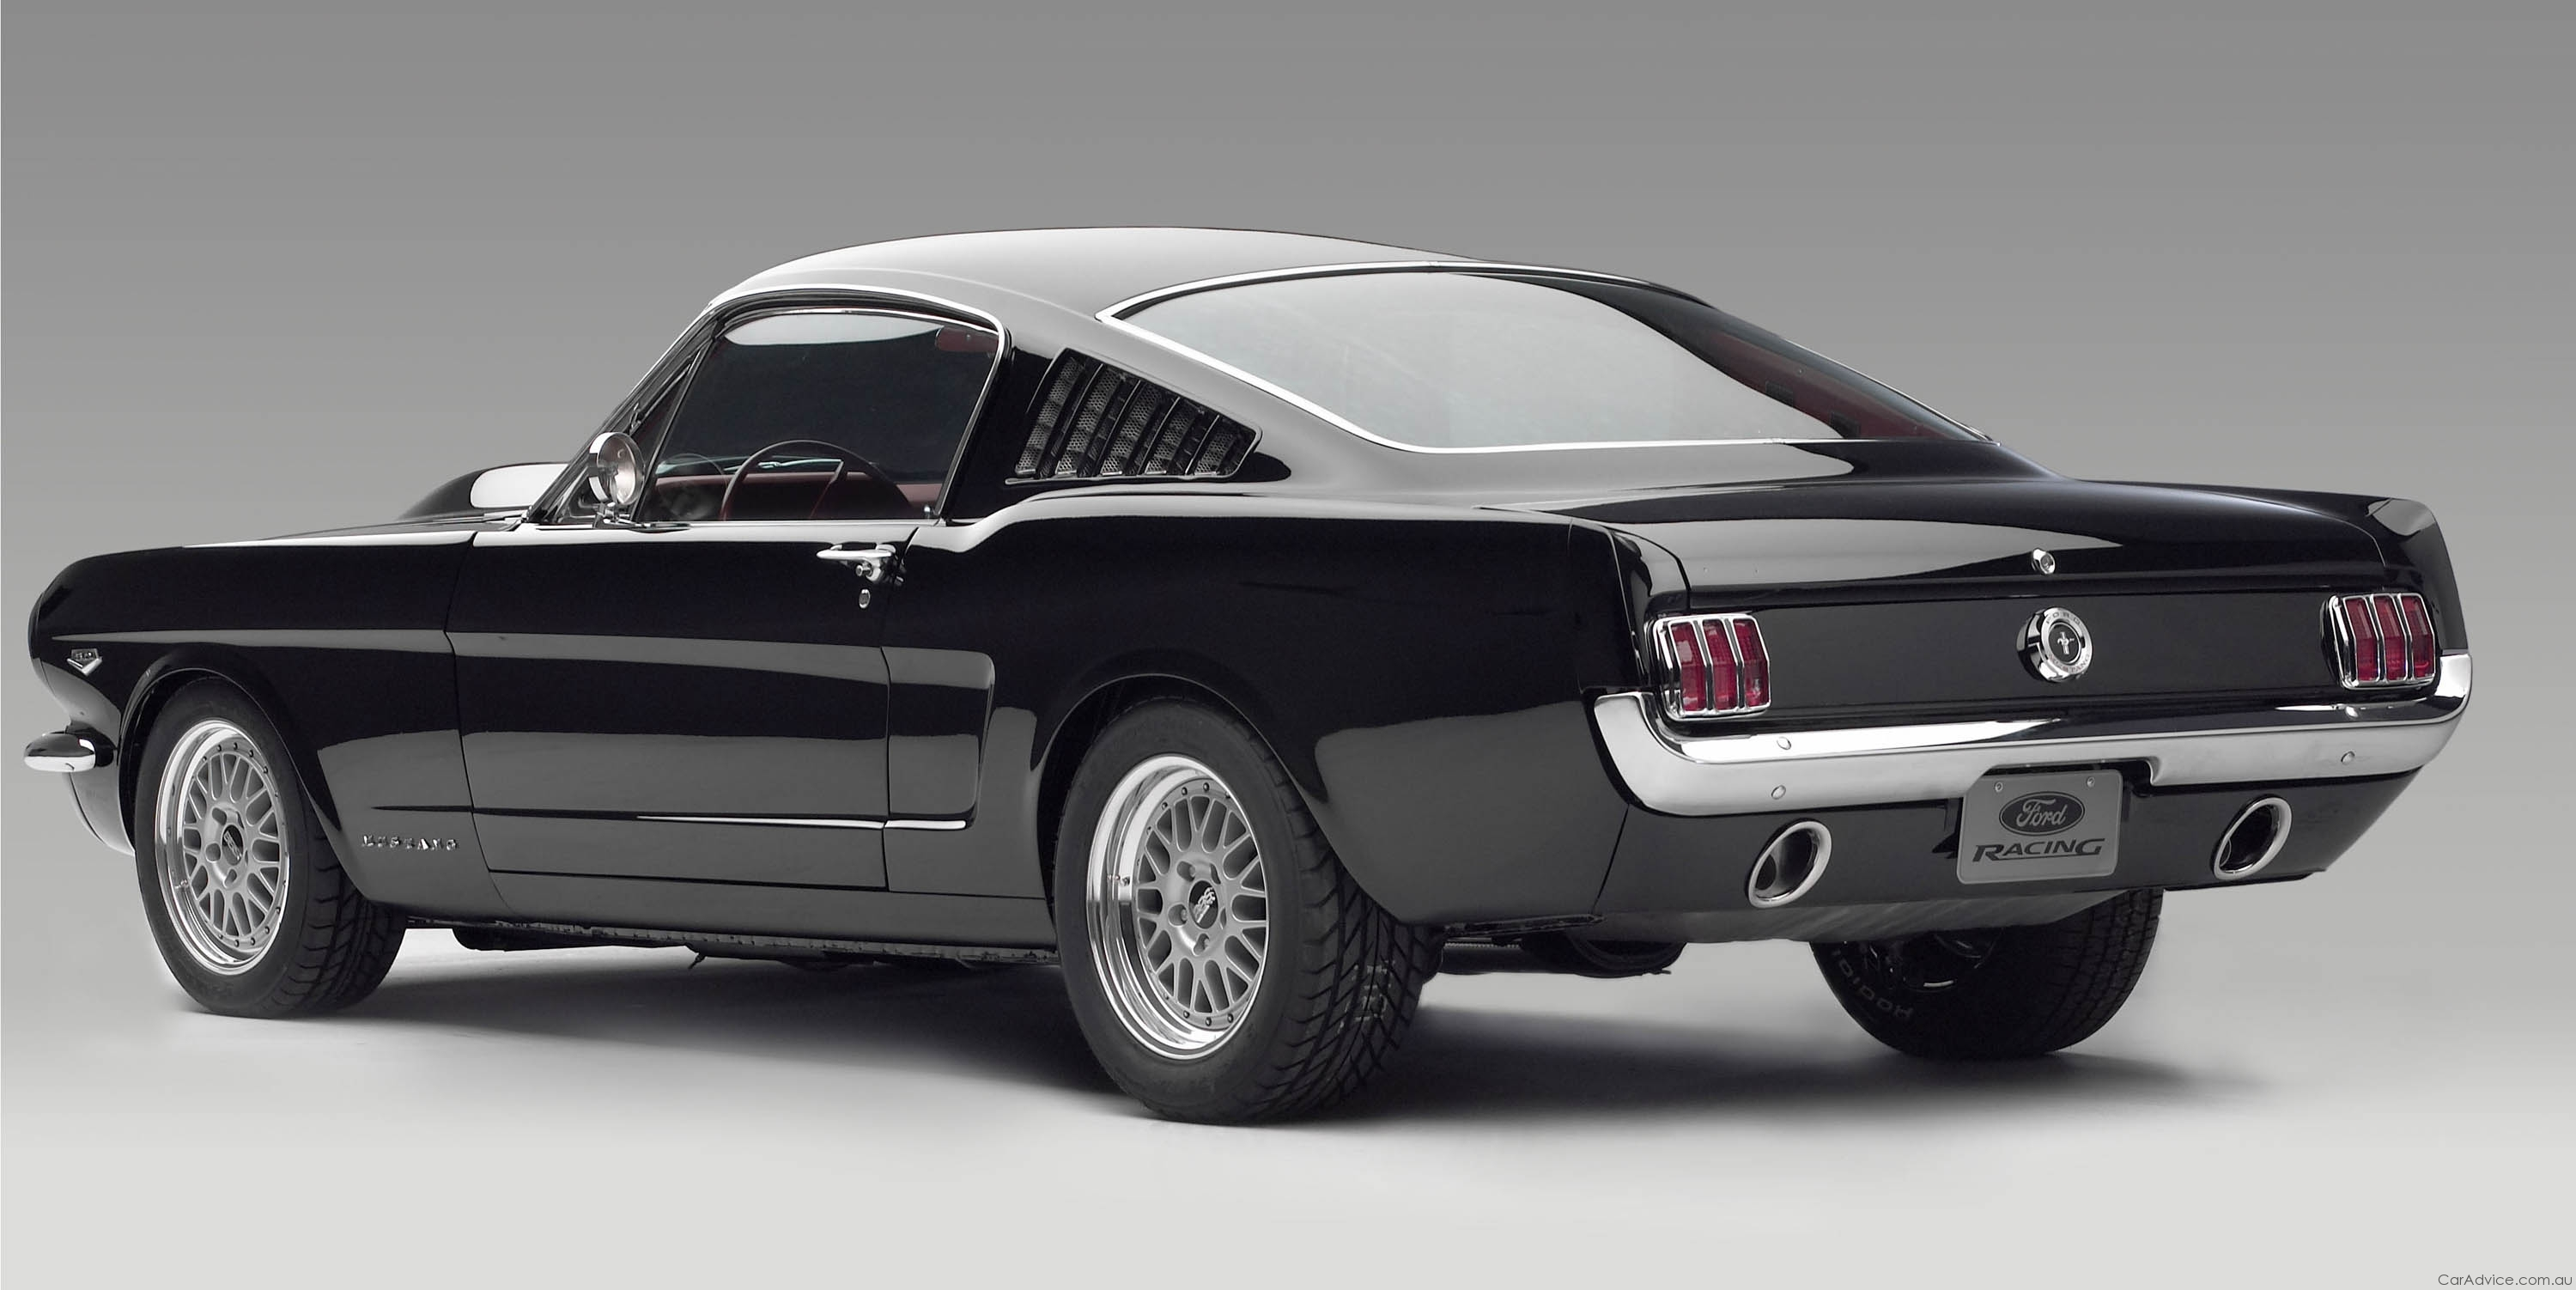 152259 download wallpaper Auto, Ford, Mustang, Cars, Back View, Rear View, Style, Celebrates screensavers and pictures for free